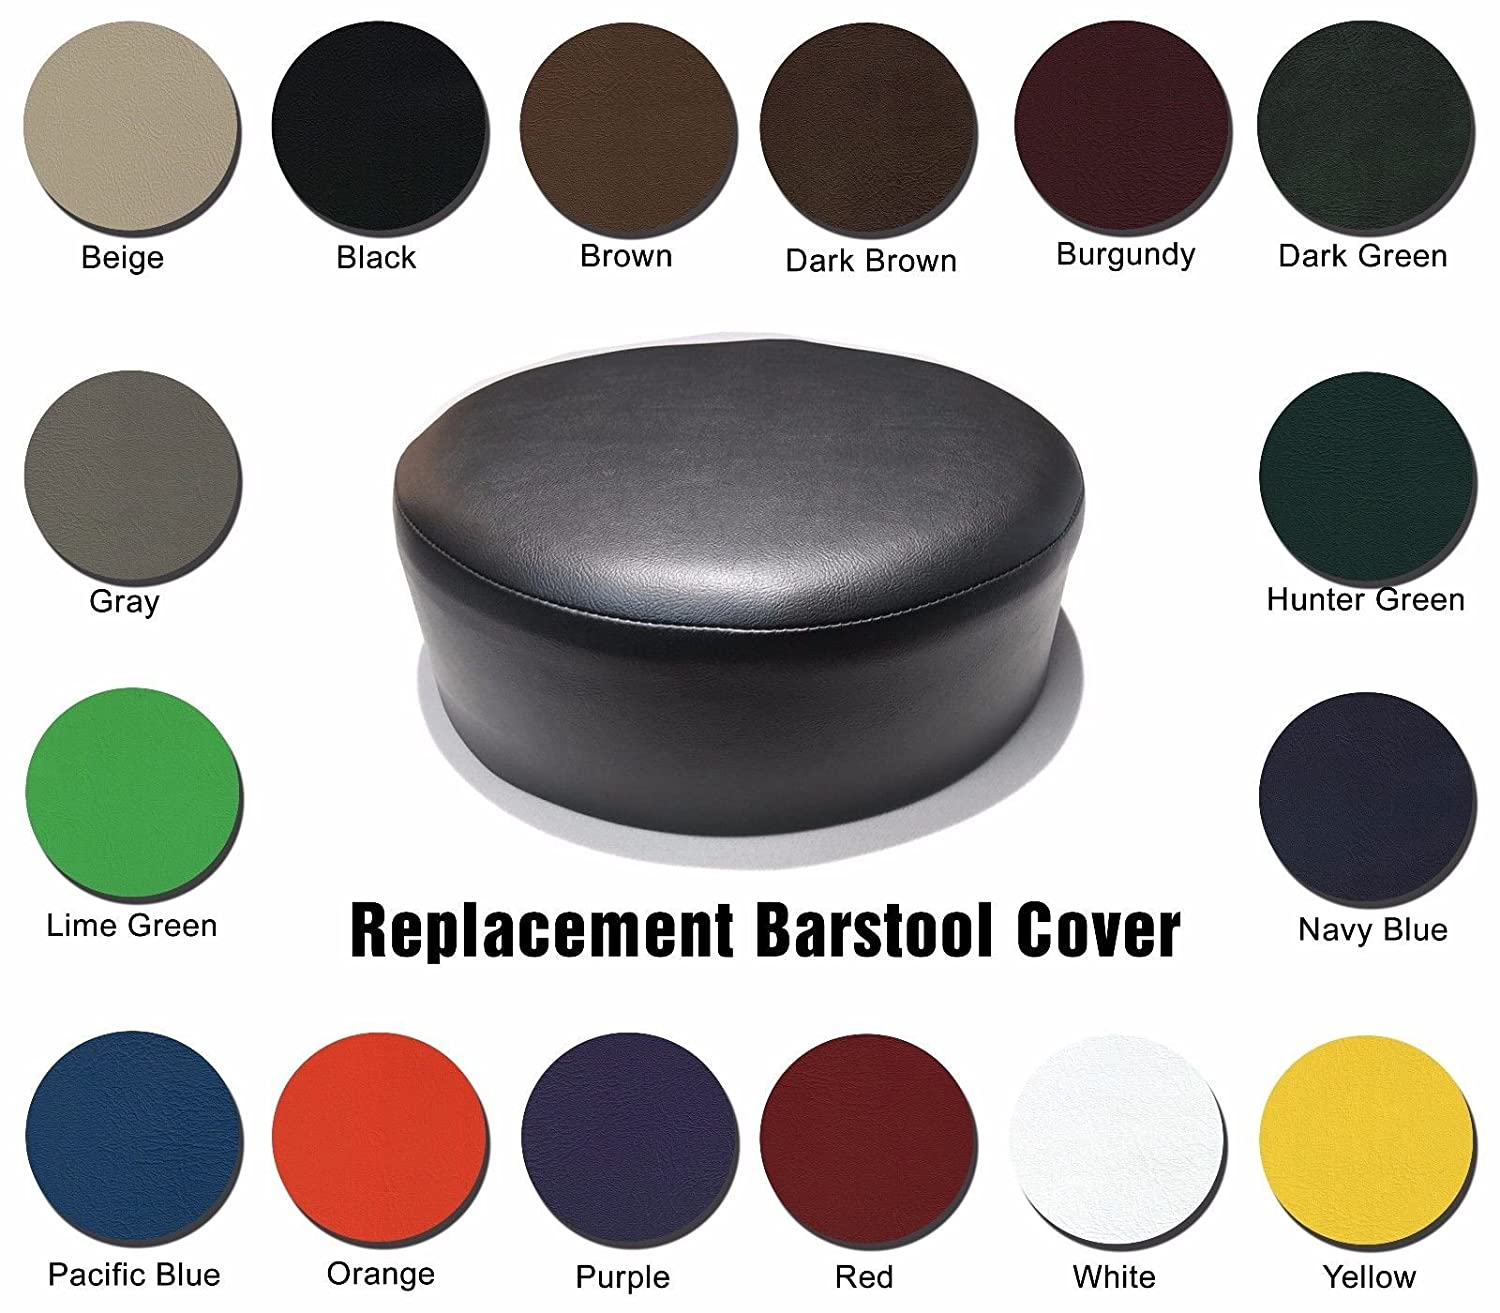 Peachy Bar Stool Cover Replacement Staple On Seat Top Made With Heavy Duty Commercial Grade Vinyl 14 Inch Diameter Black Ncnpc Chair Design For Home Ncnpcorg